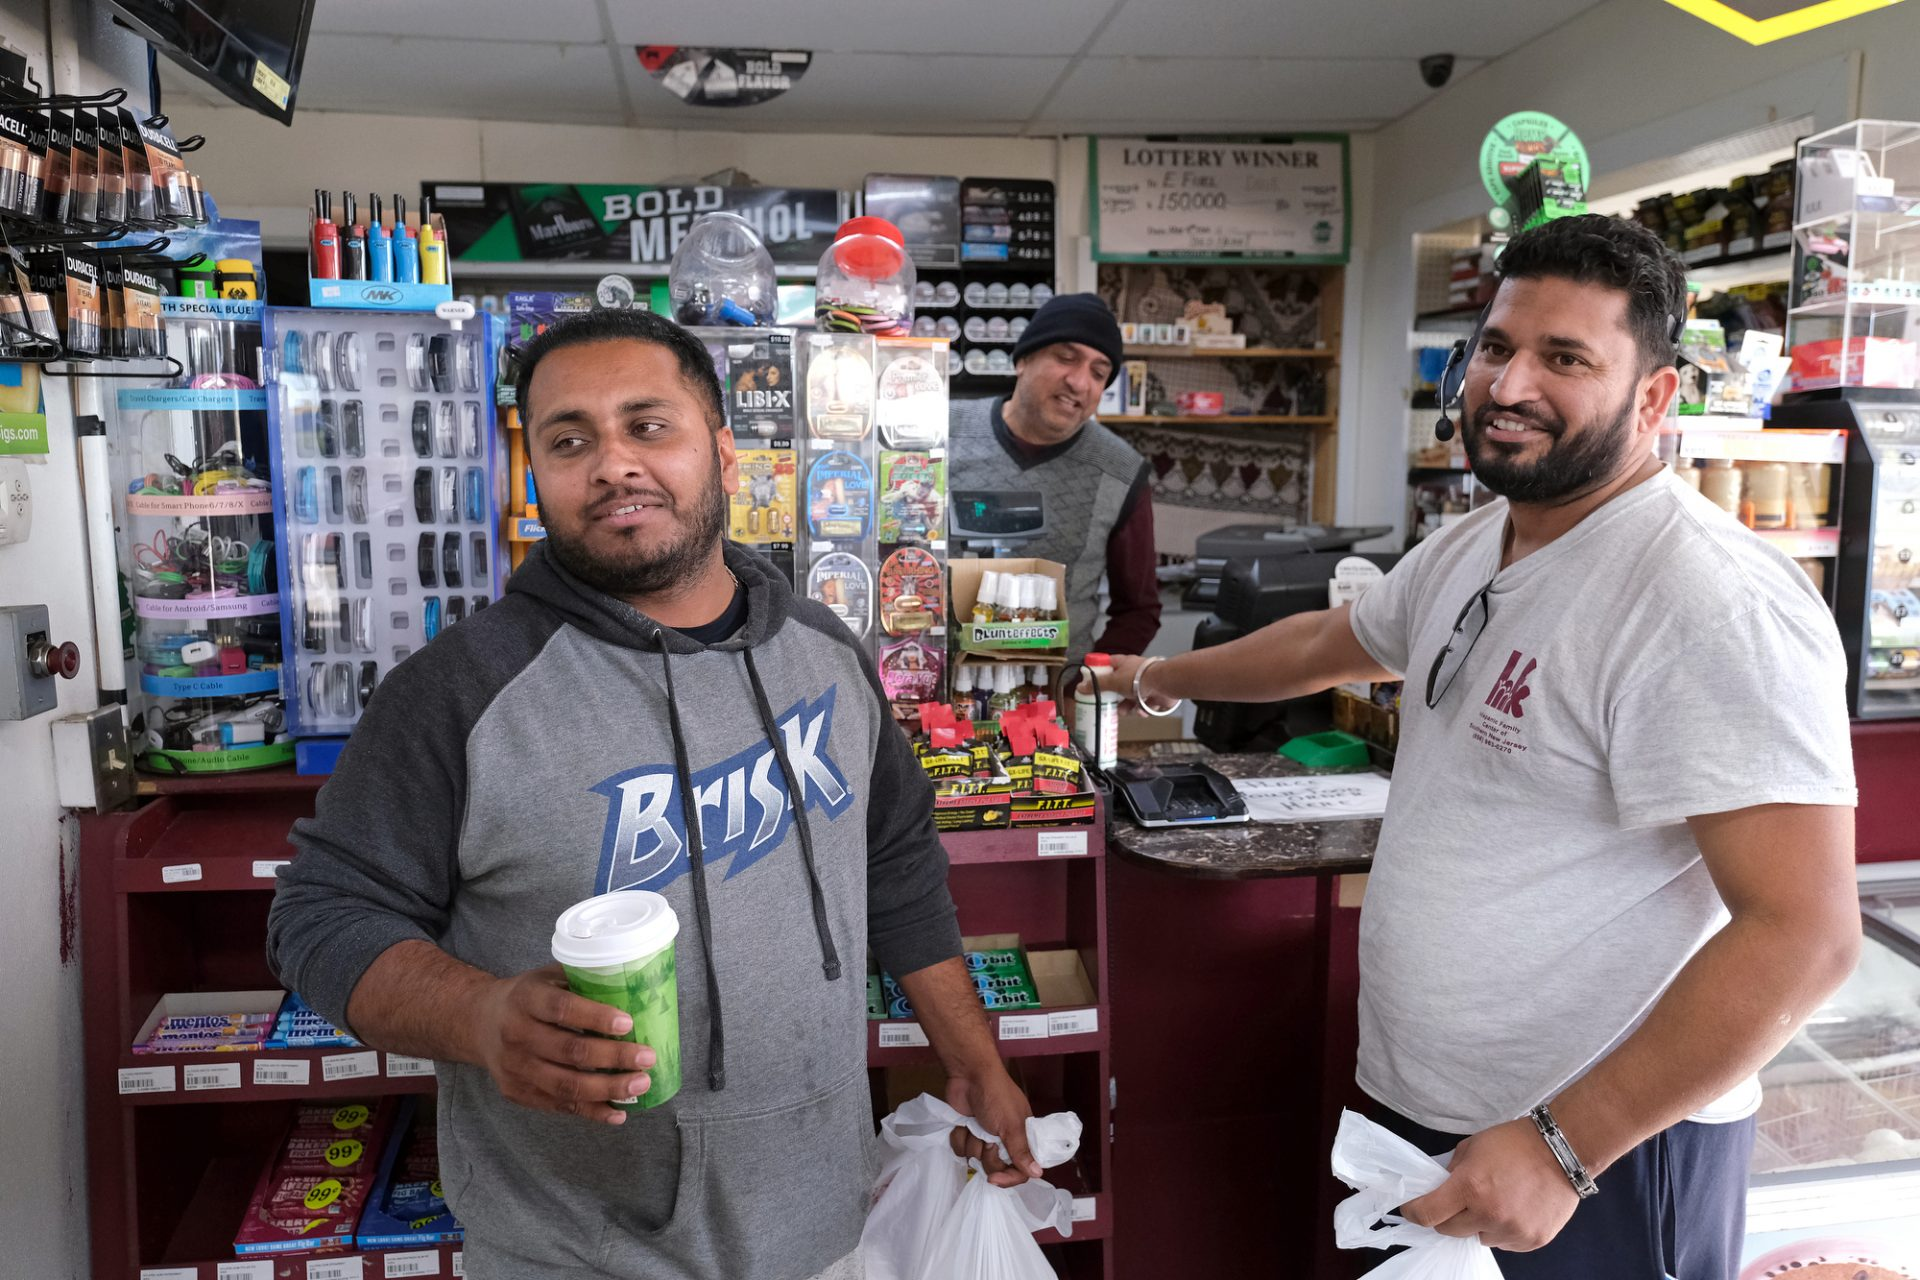 Sam Singh, left, of Michigan, and Arjan Singh, right, of New Jersey, buy food inside Eat Spice on Oct. 24, 2019, in the truck stop on route 534 off I-80 in White Haven, Pennsylvania. The restaurant caters to members of the Sikh community and as there is a large population of truckers from that community, the Indian Dhaba and Mediterranean dishes become hard to find on the road.